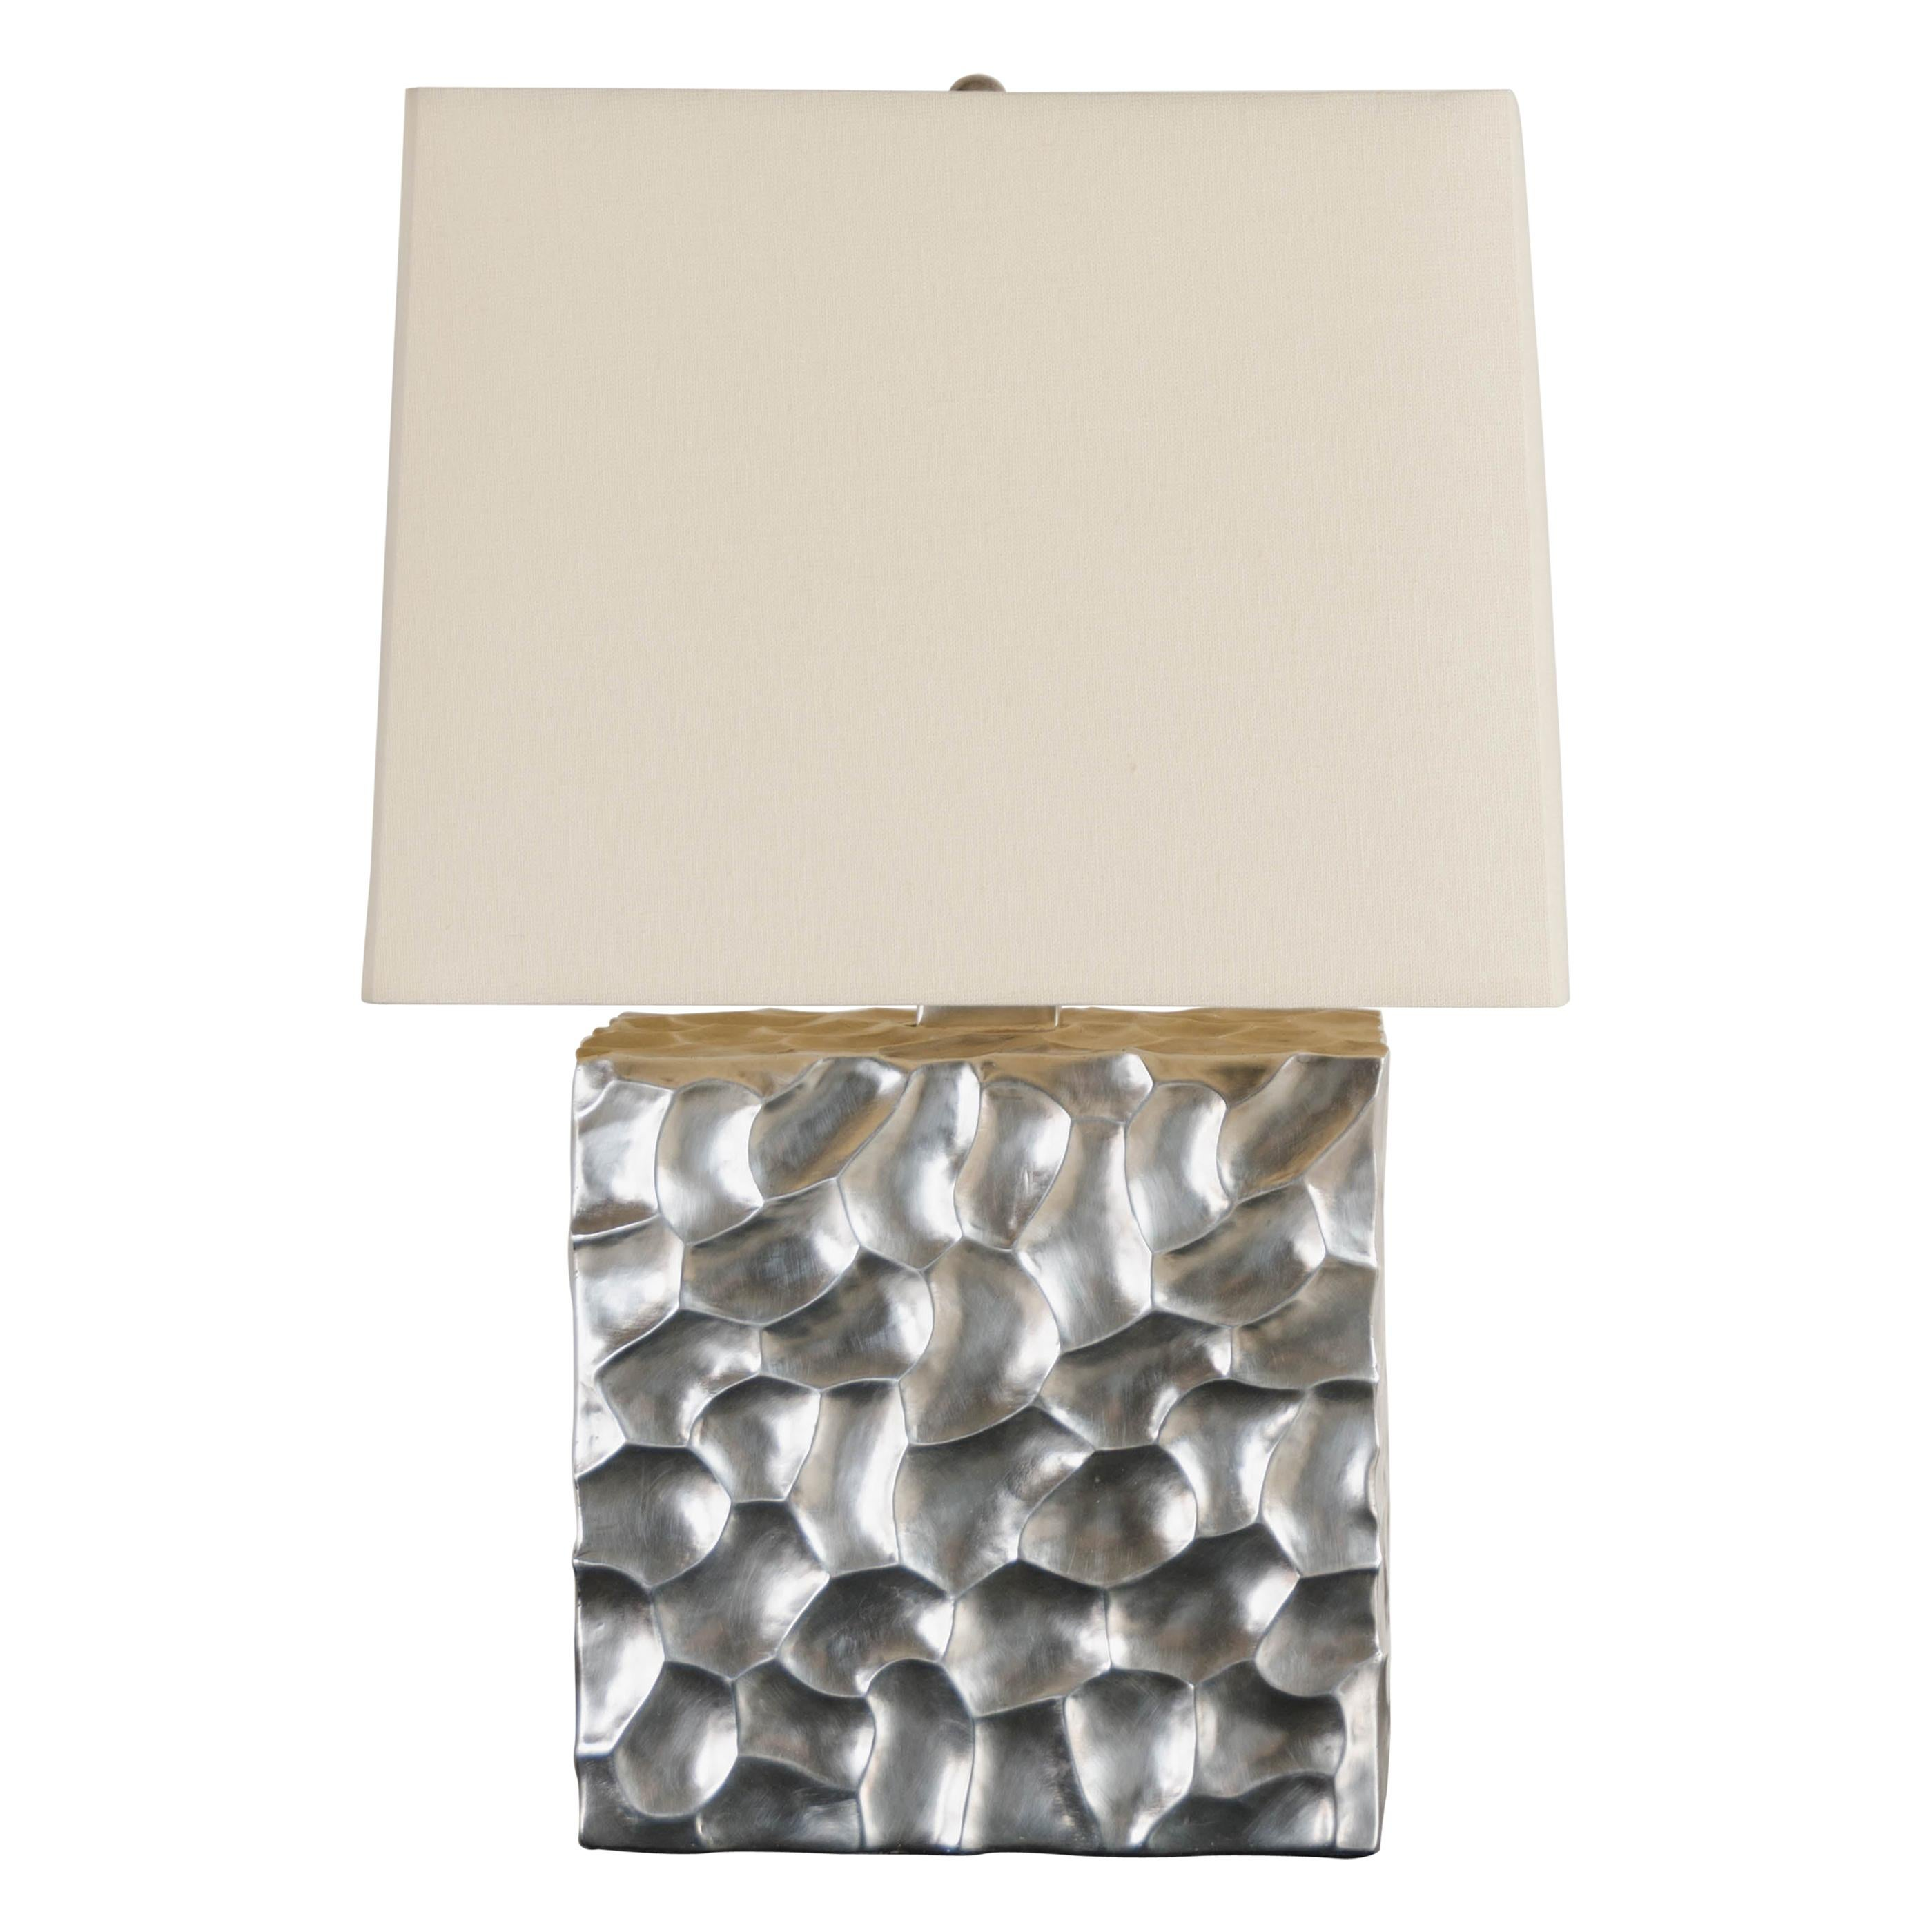 Contemporary Silver Plated Rocco Cube Table Lamp by Robert Kuo, Limited Edition